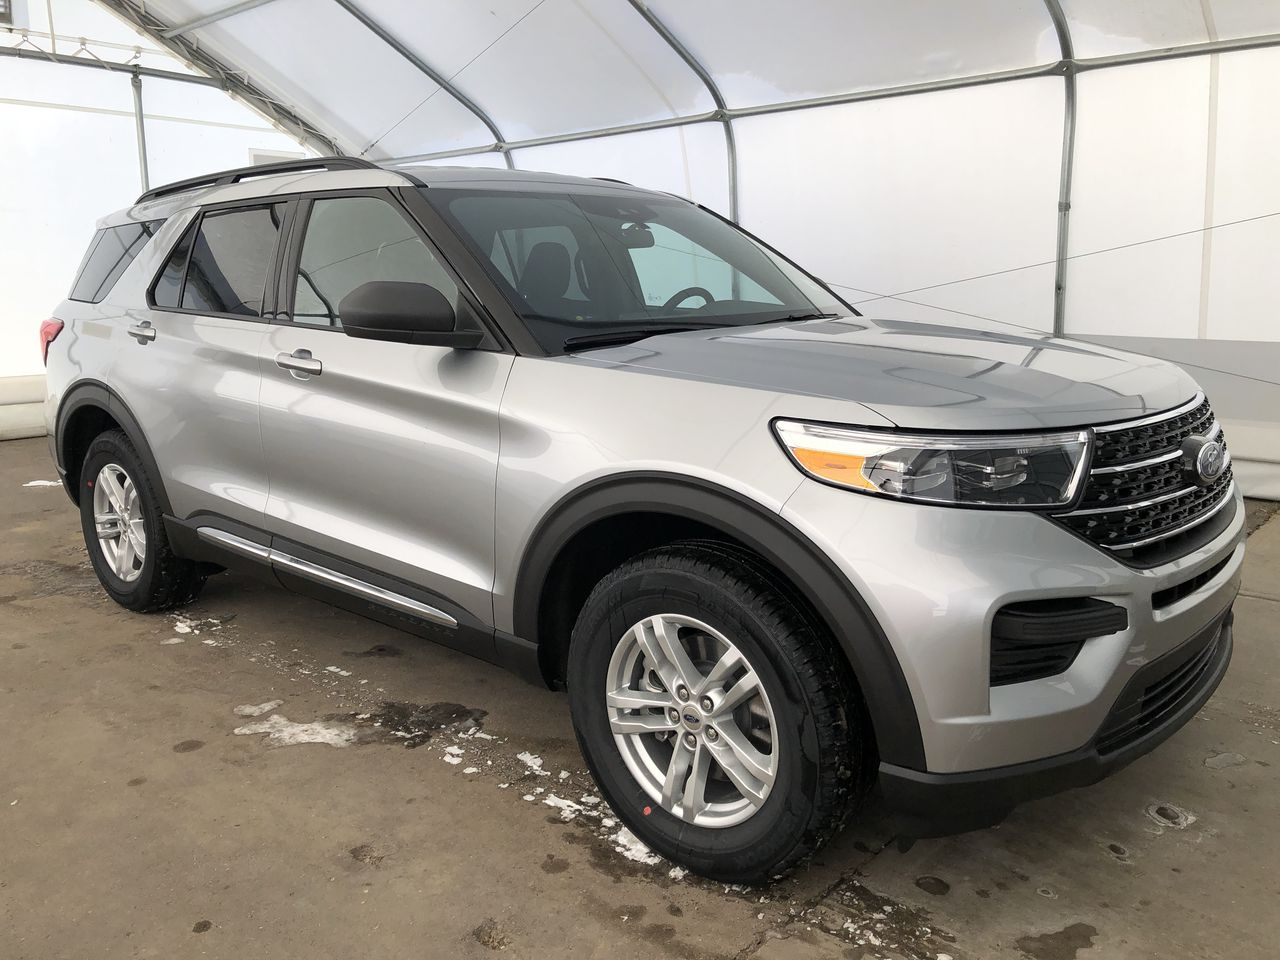 2020 Ford Explorer XLT (0N6621) Main Image